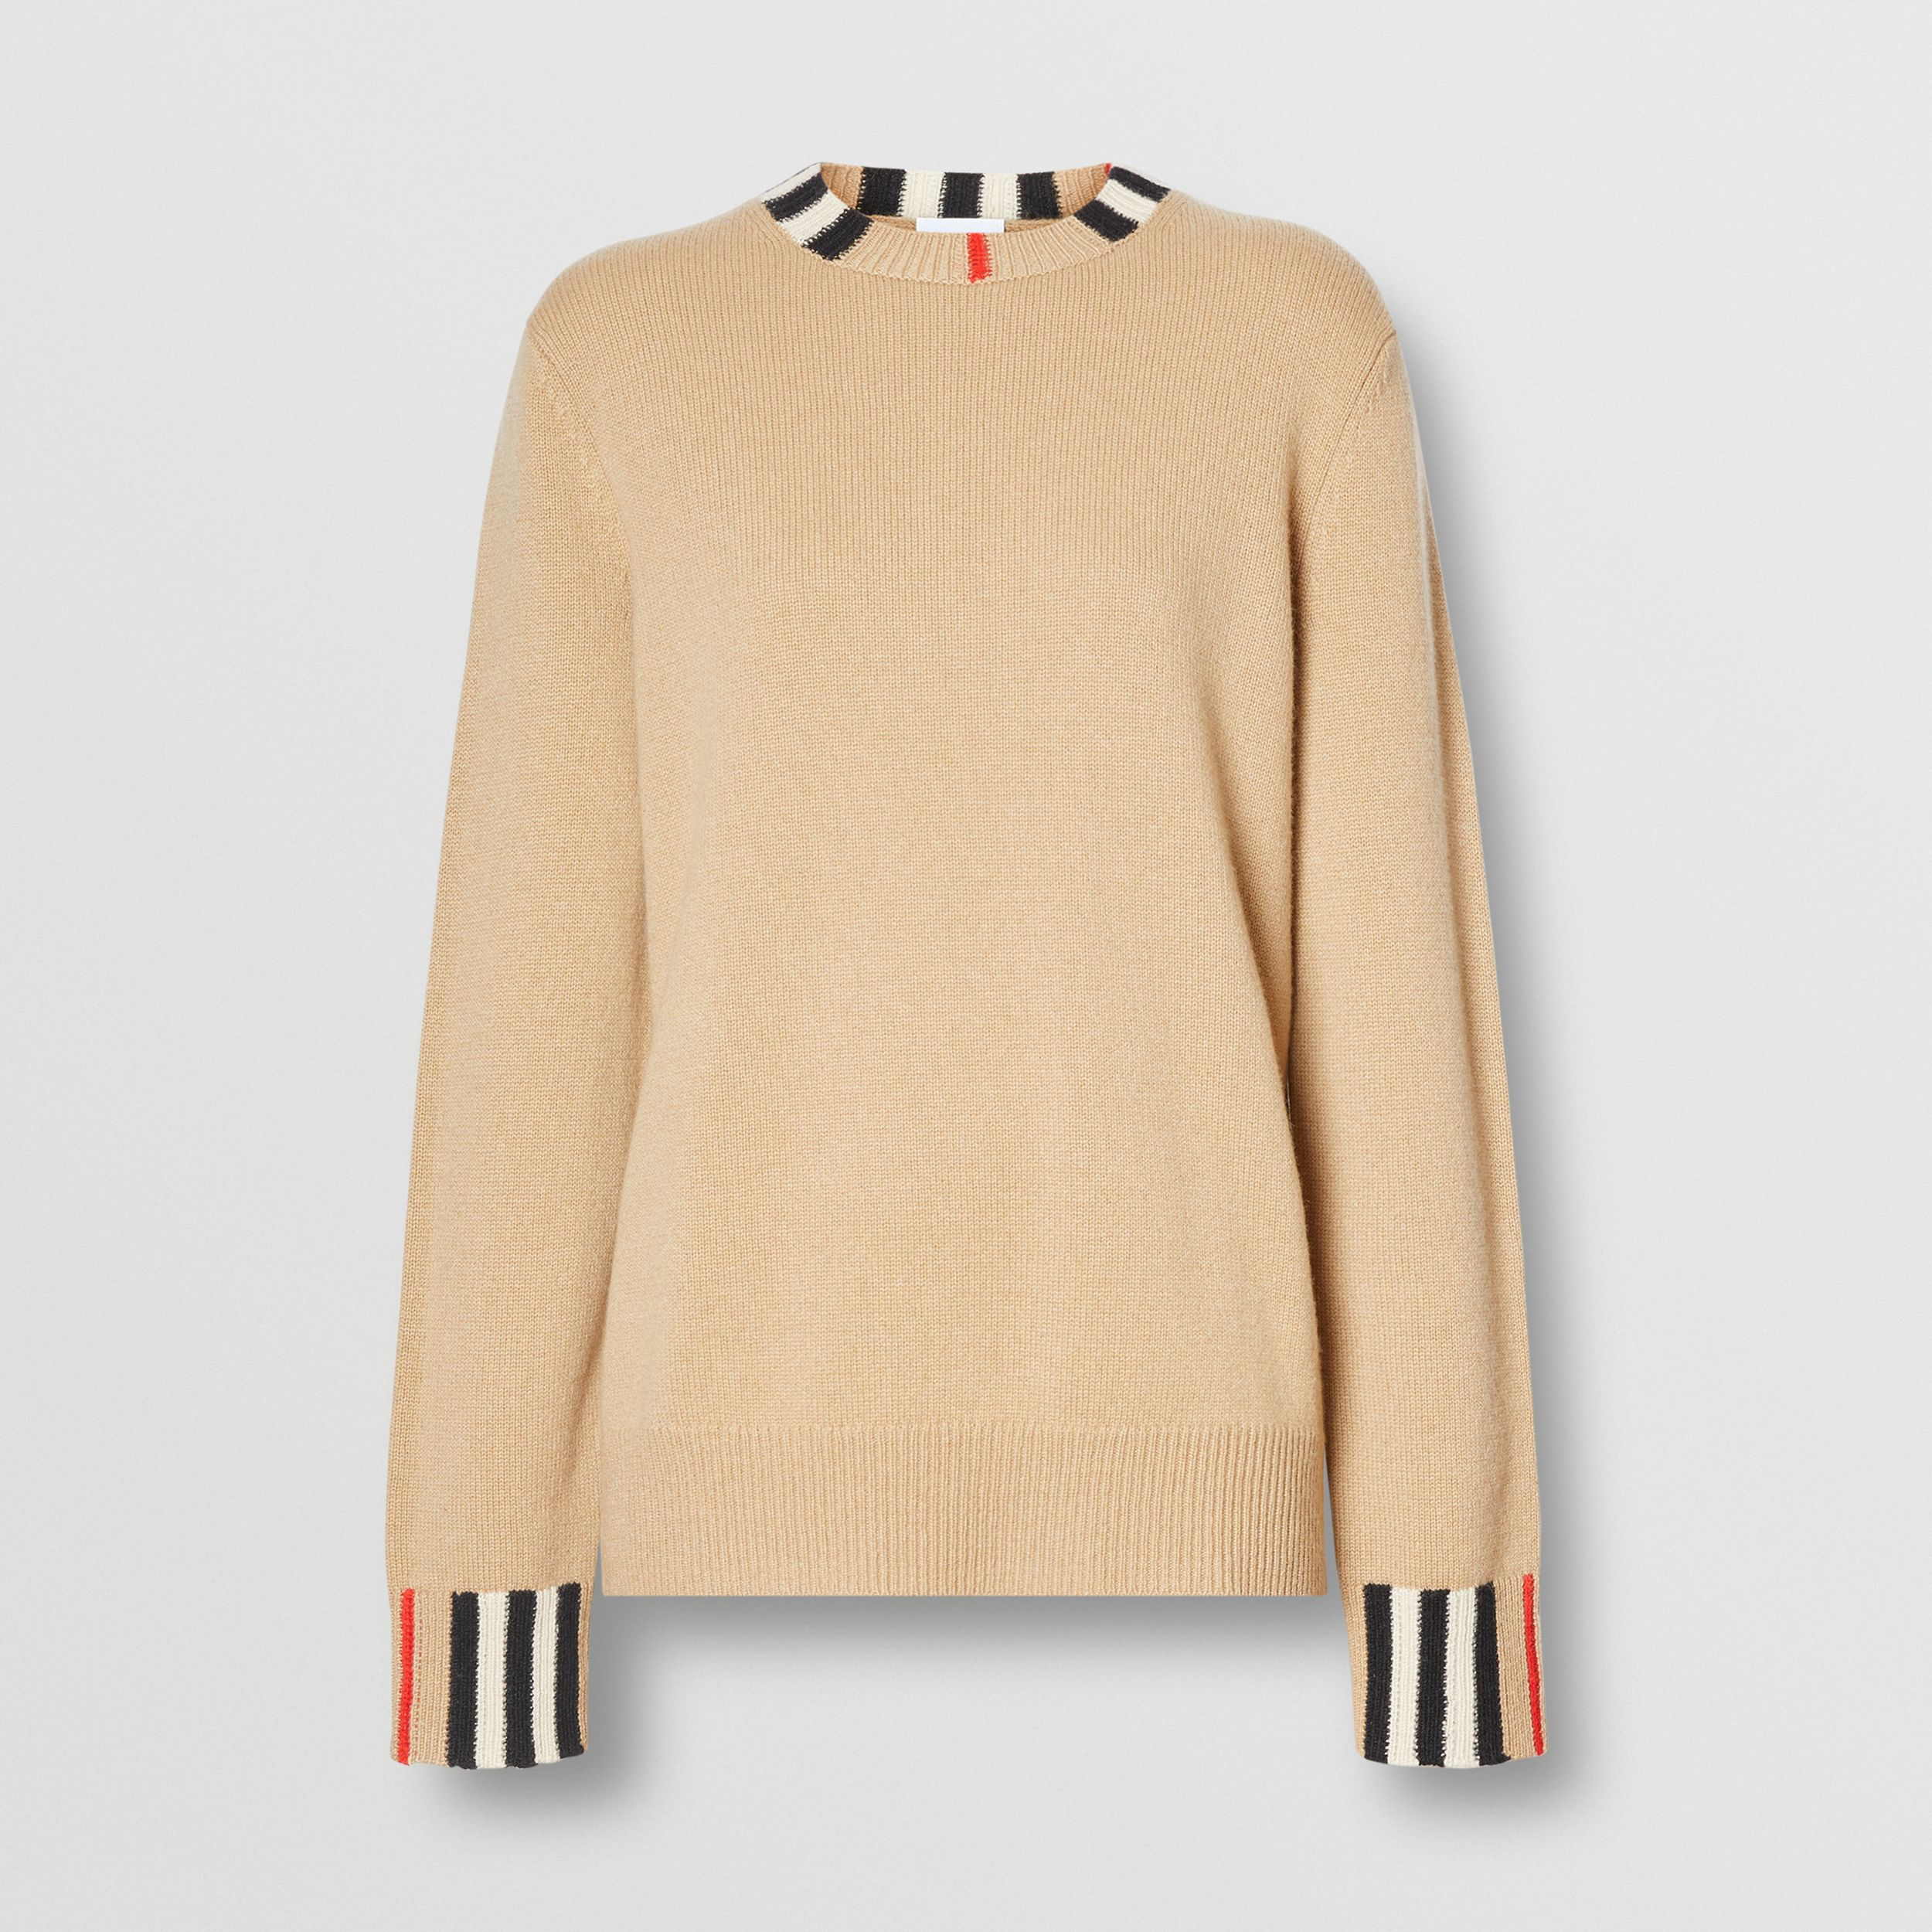 Icon Stripe Trim Cashmere Sweater in Archive Beige - Women | Burberry - 4